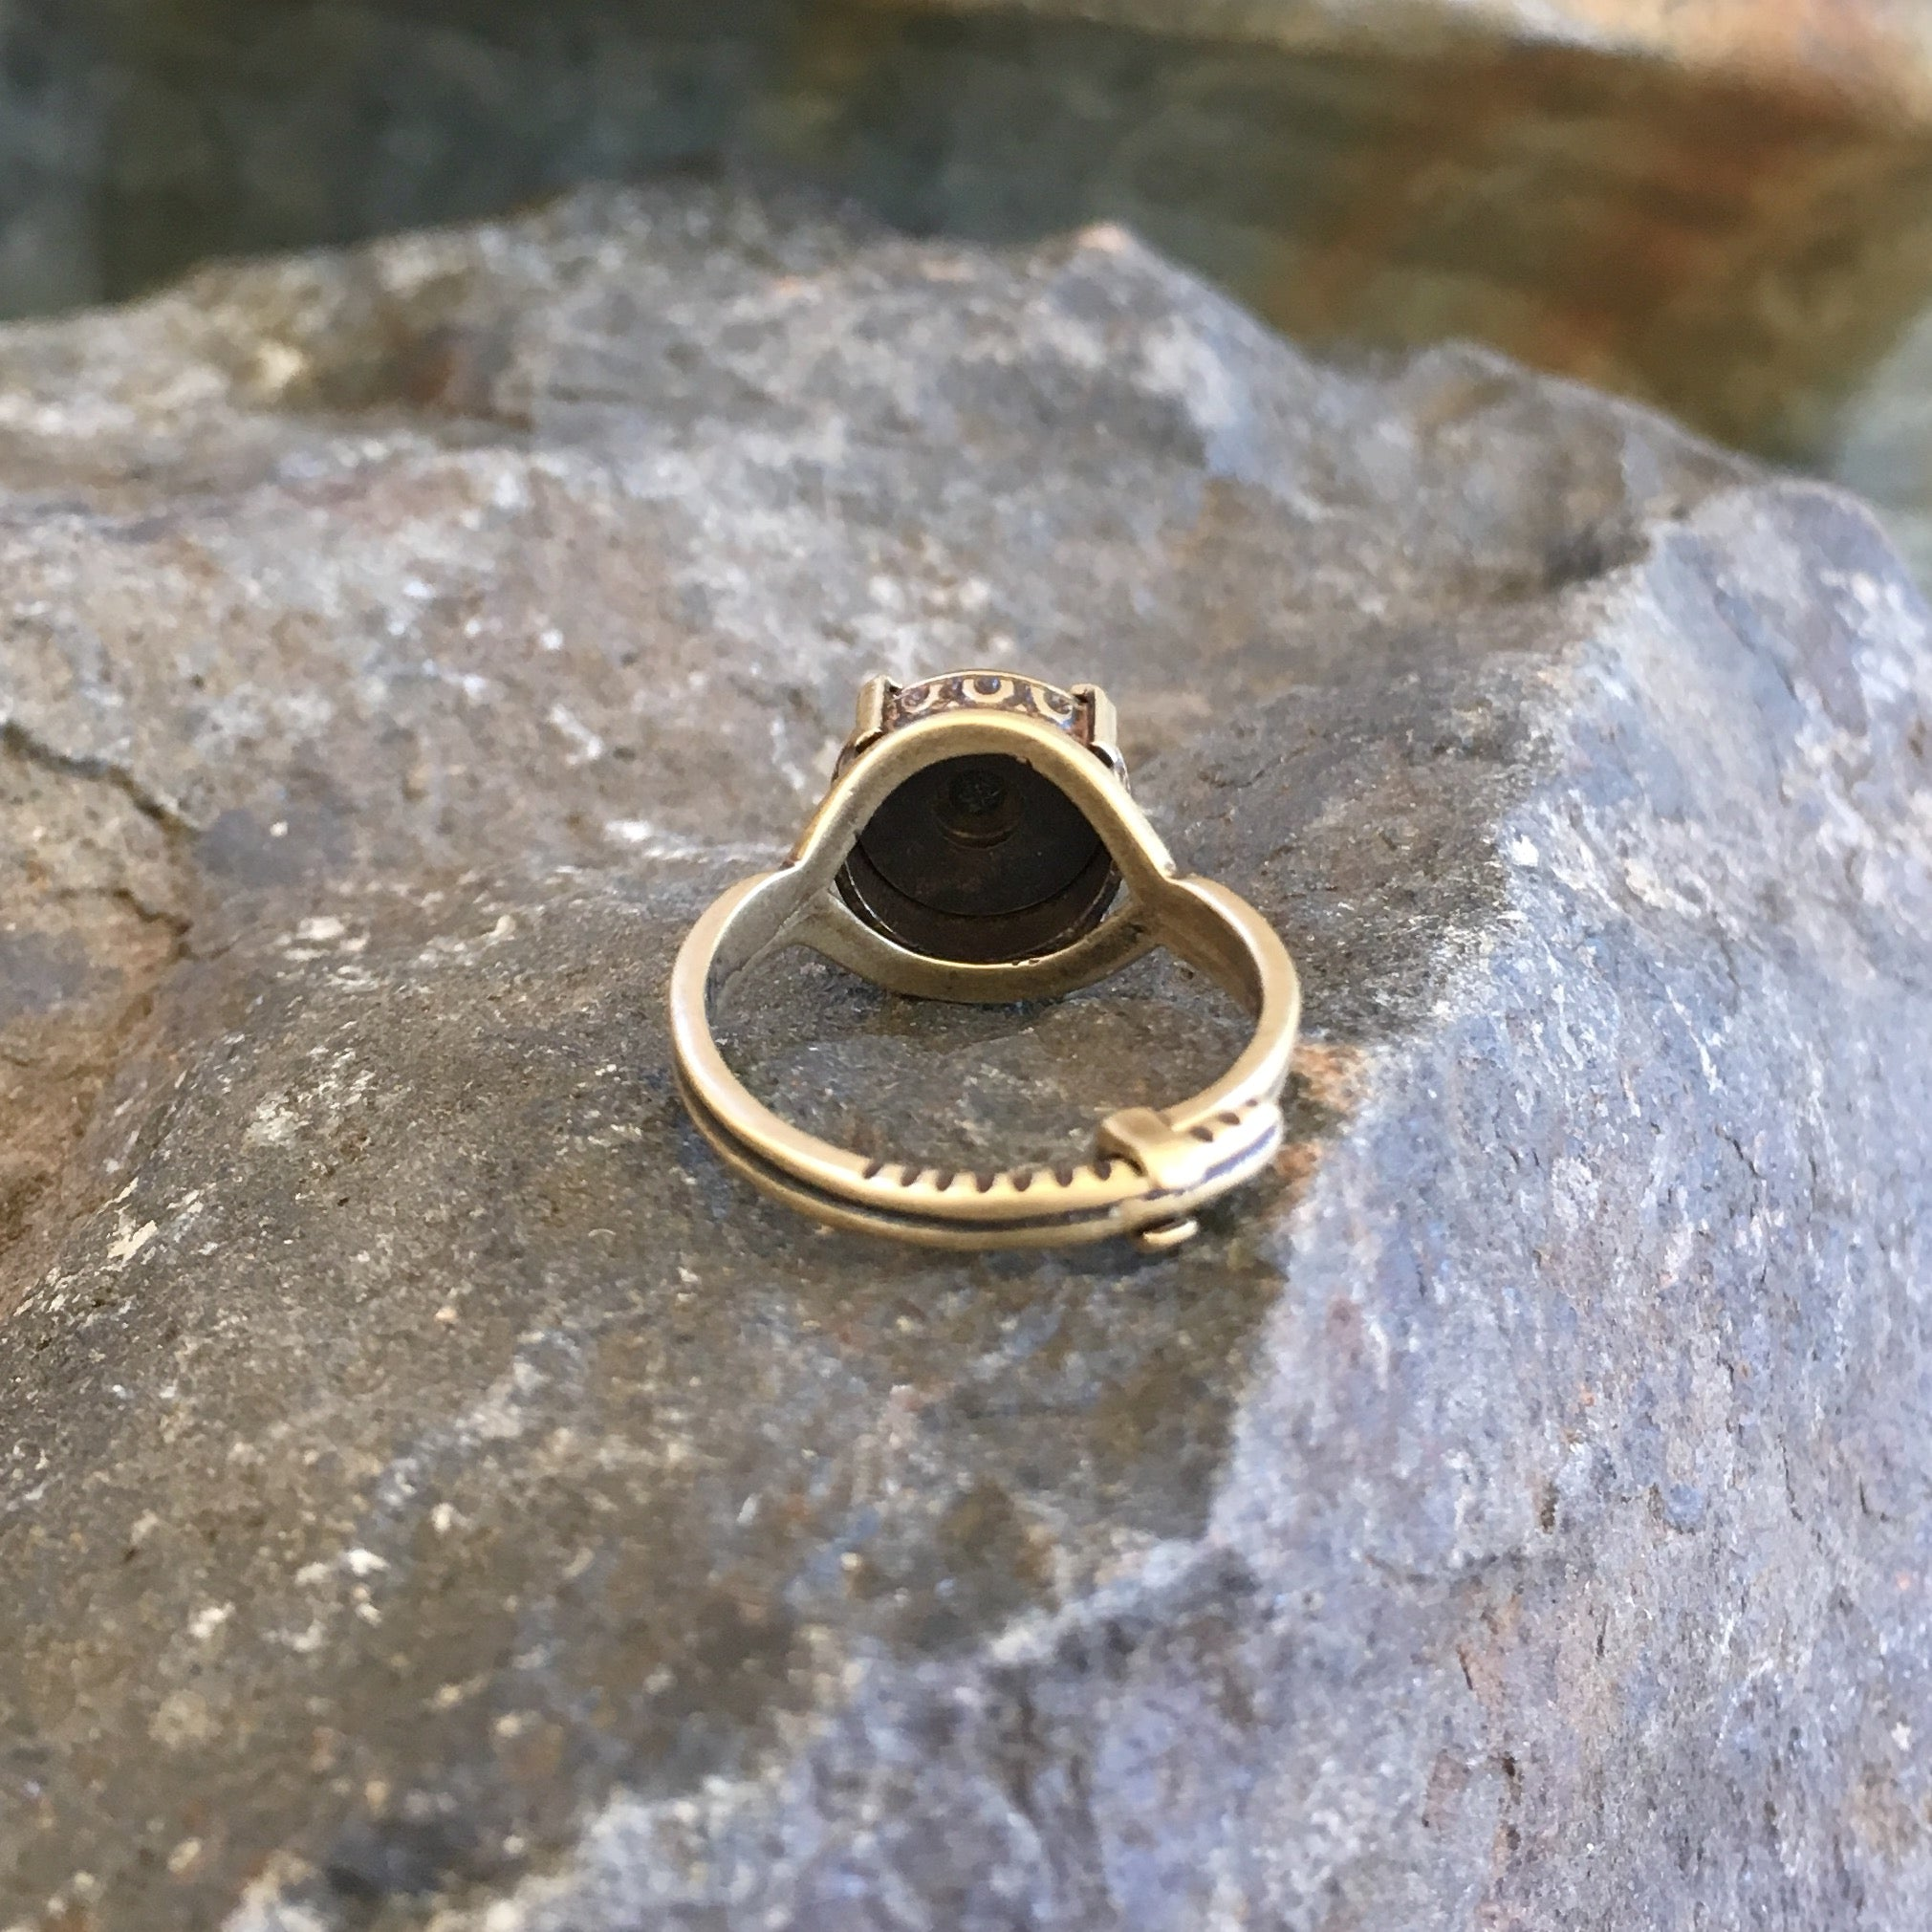 Bullet Casing Crown Ring - Silver or Bronze